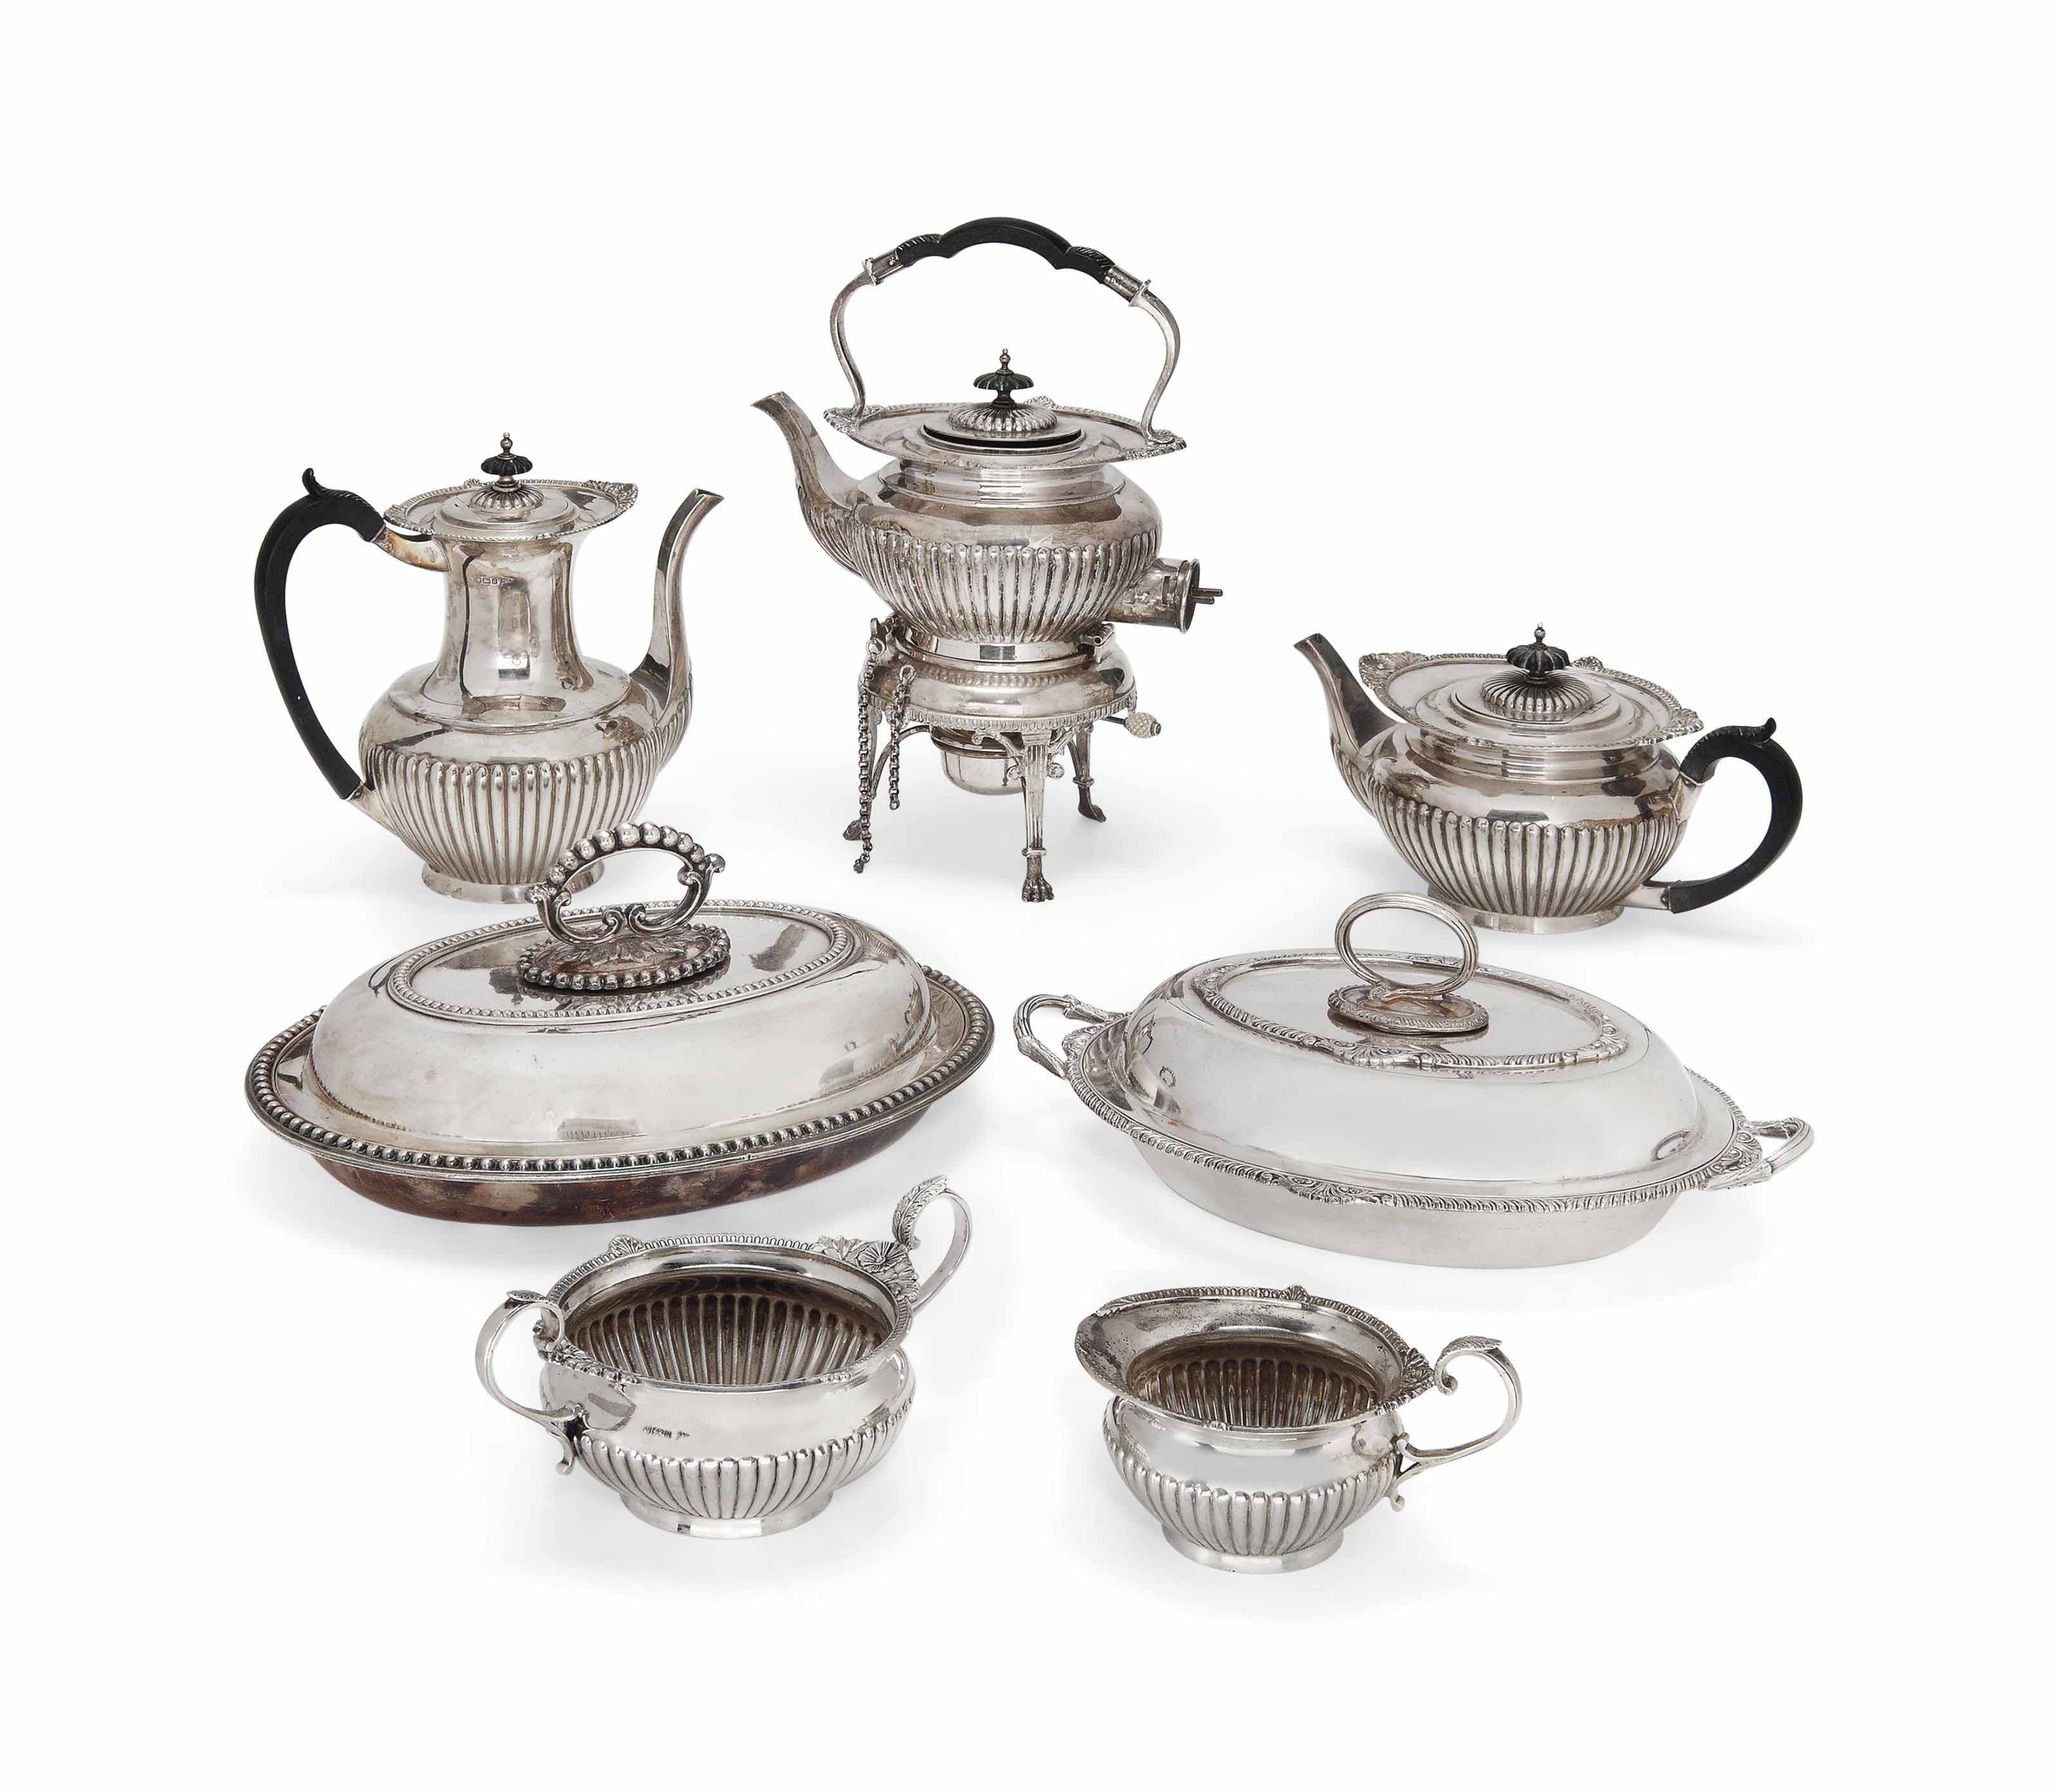 AN EDWARDIAN SILVER FIVE-PIECE TEA AND COFFEE SET OF CAPE PATTERN